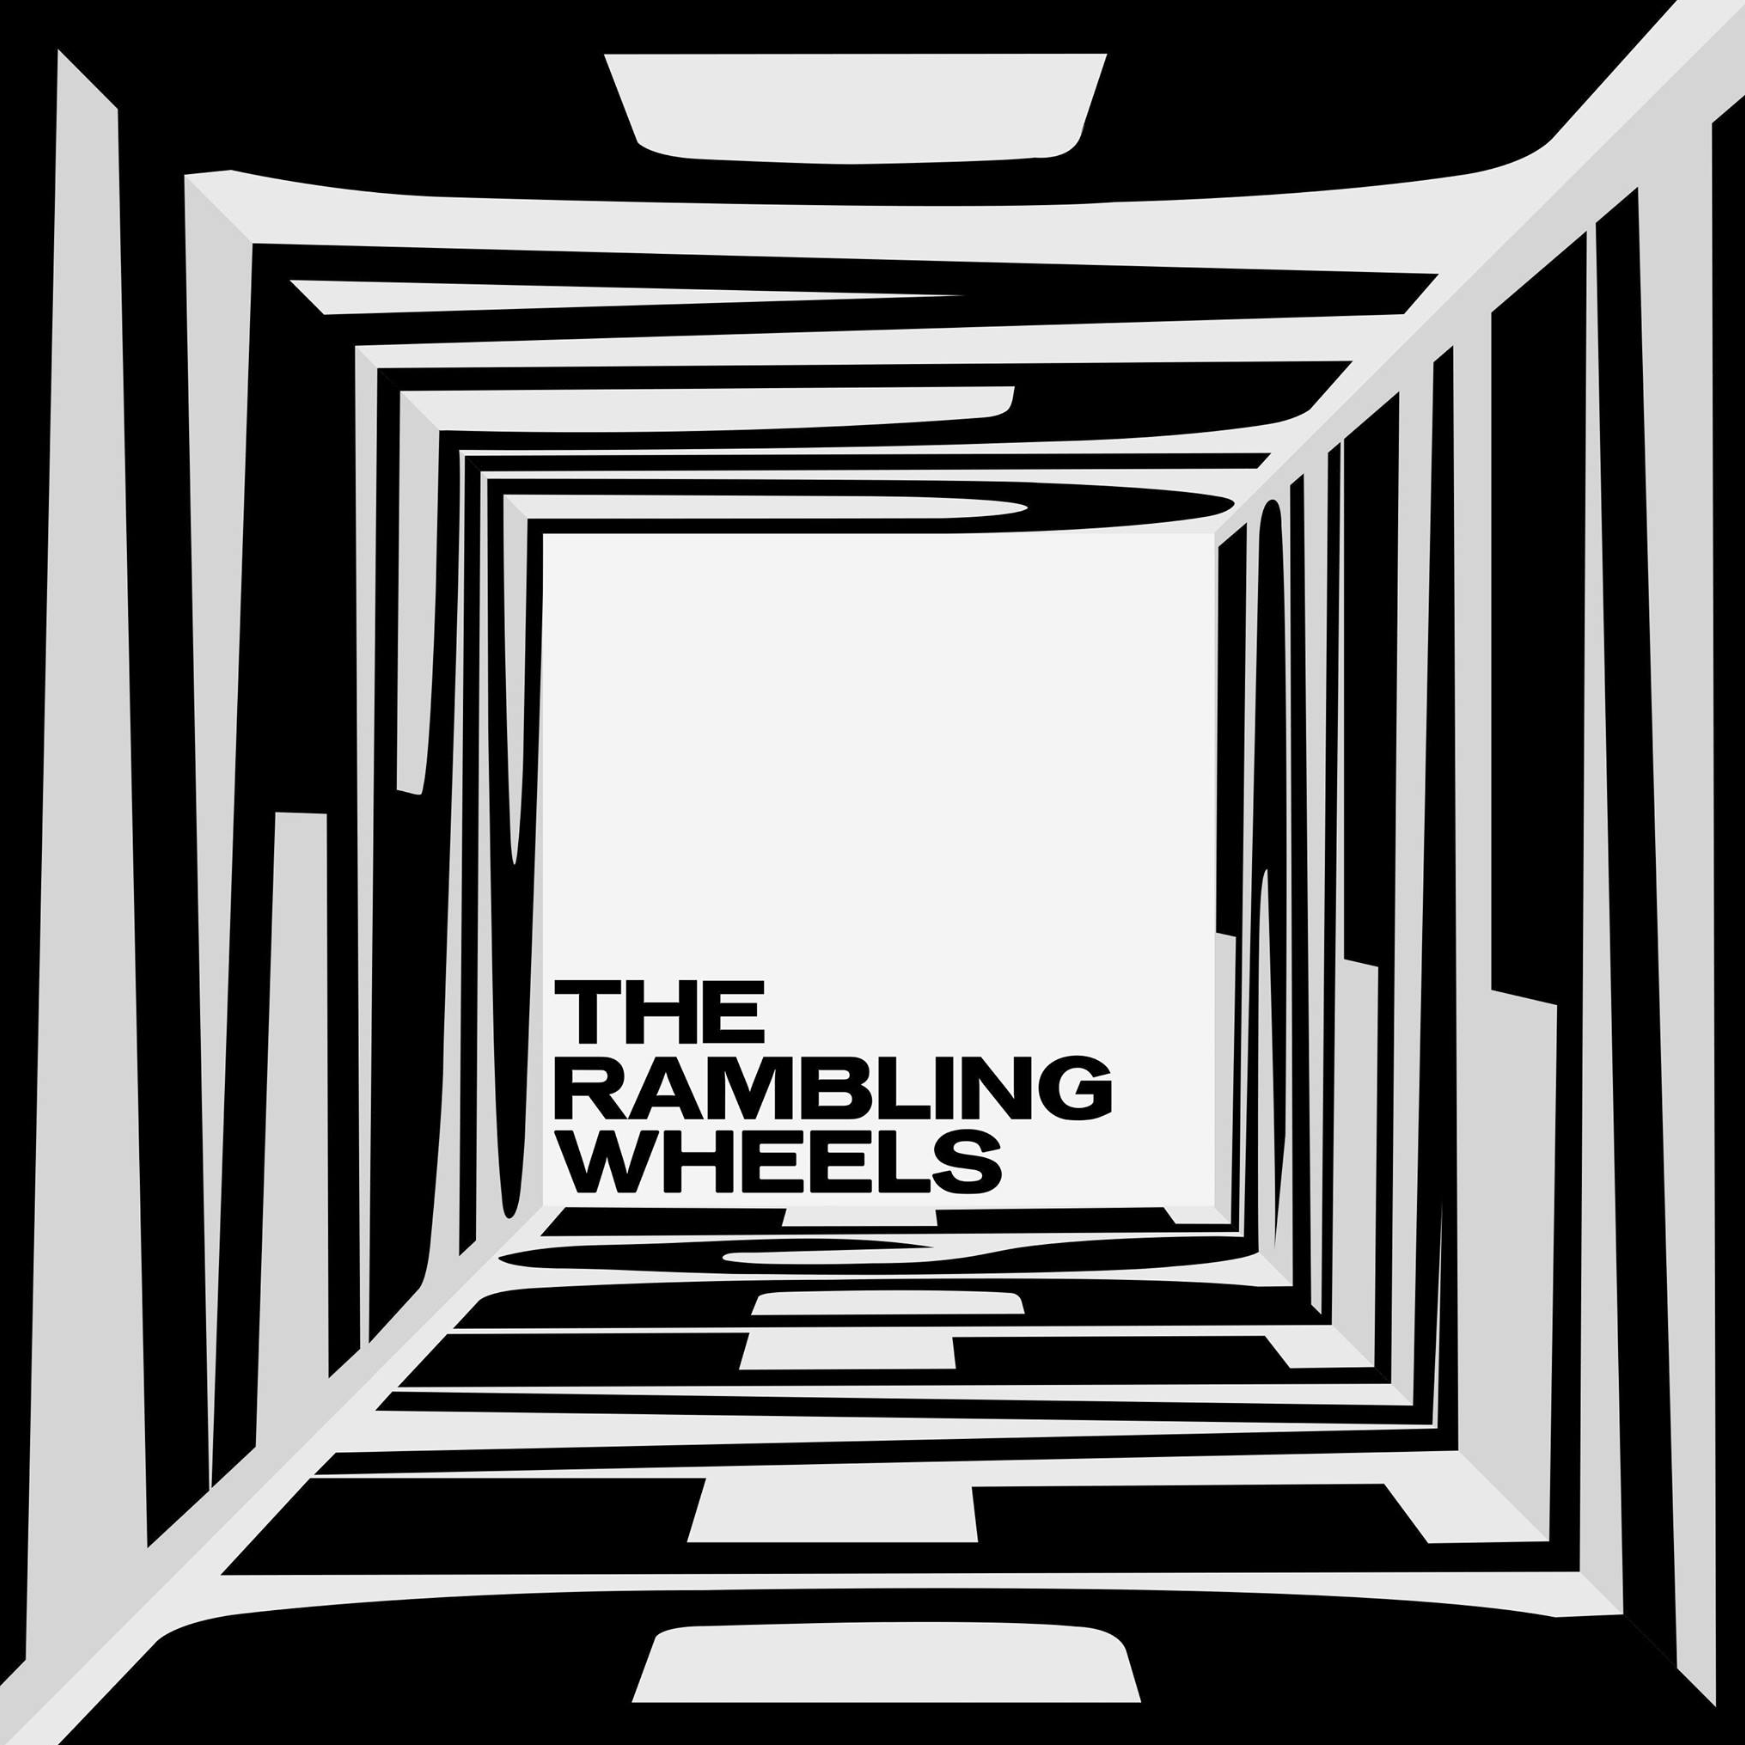 The Rambling Wheels